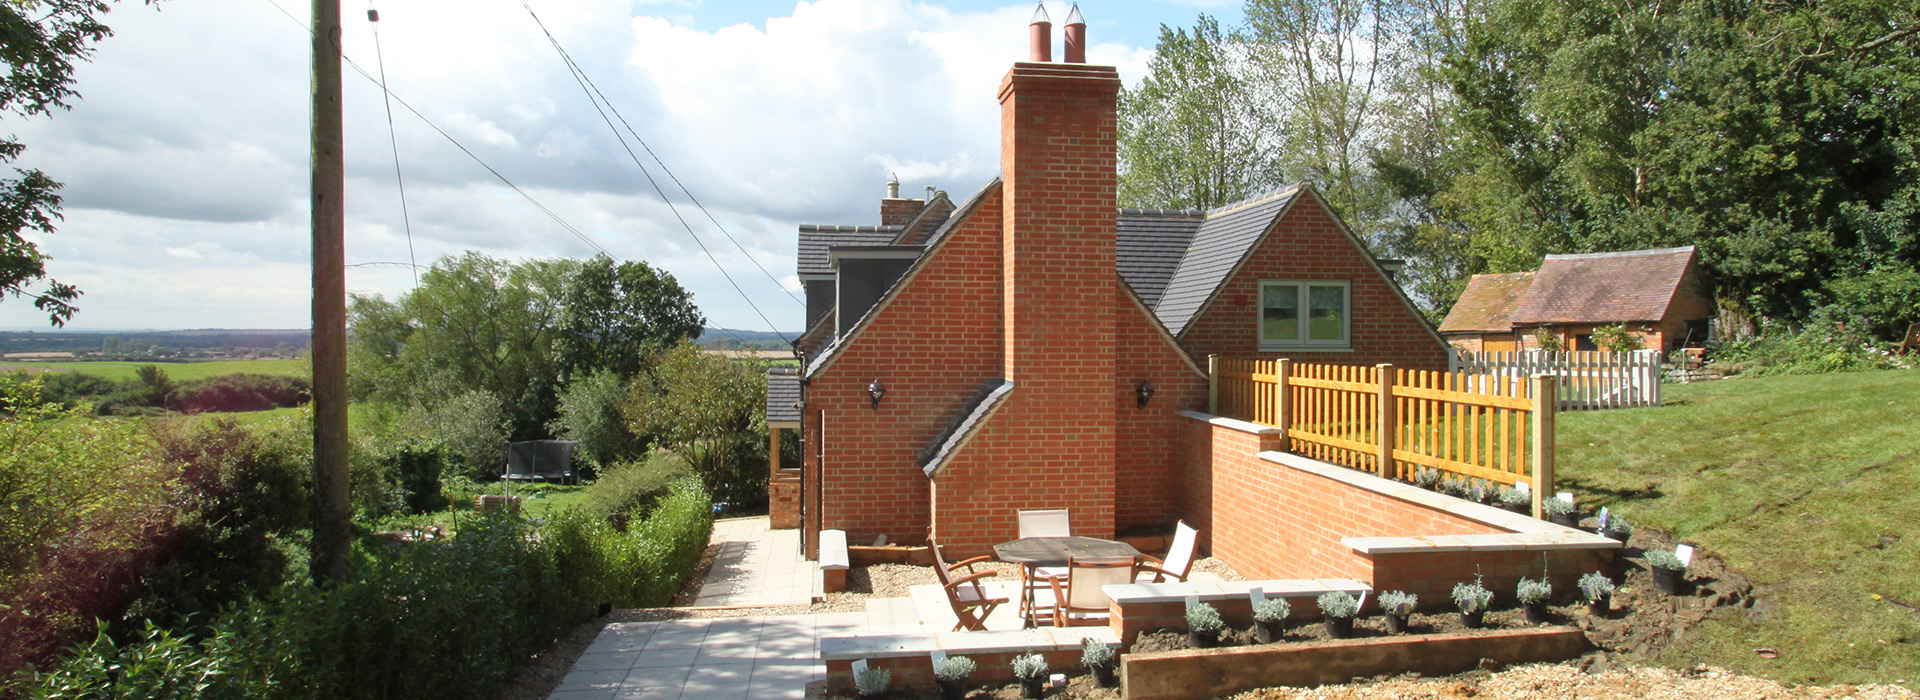 Redbrick self build detached house